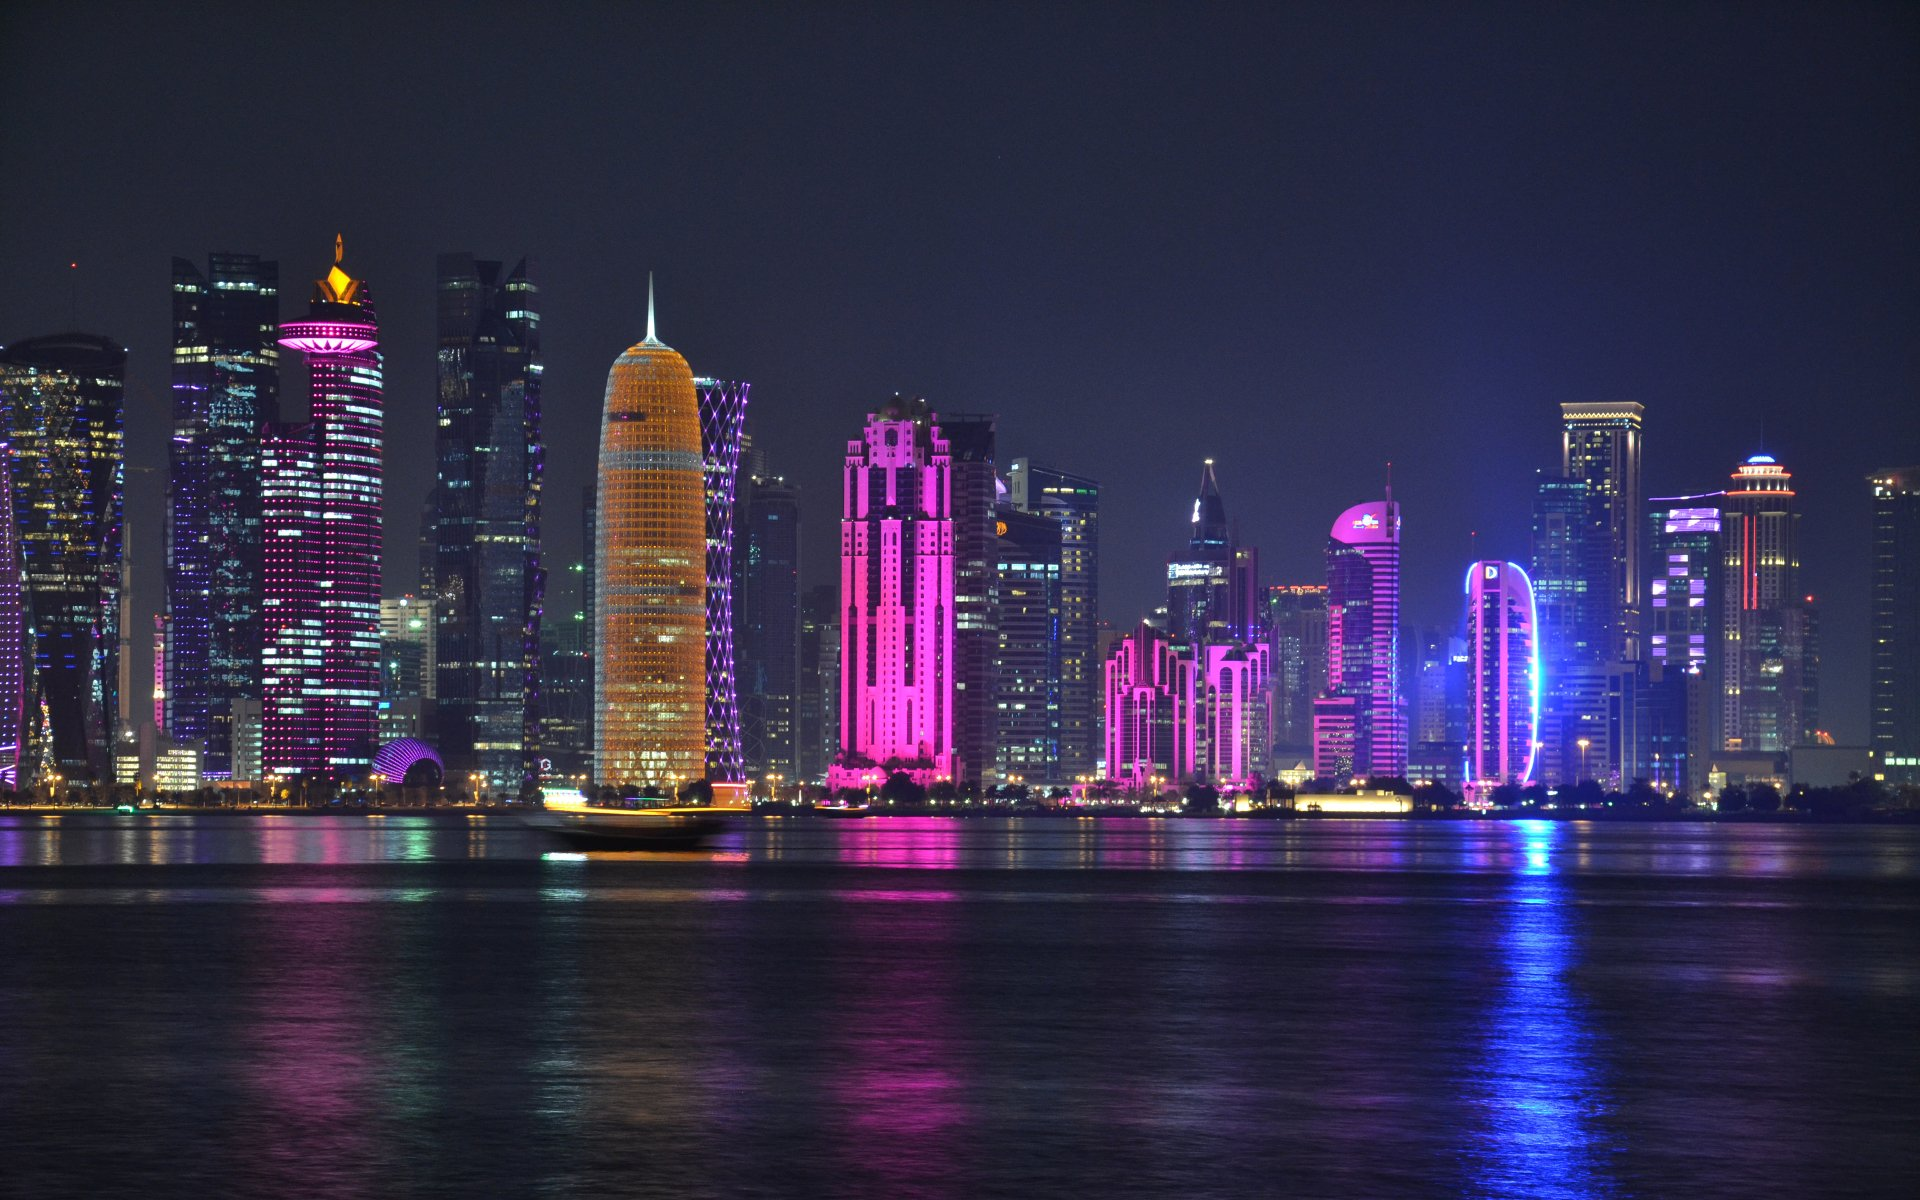 Man Made - Doha  Qatar City Night Building Light Skyscraper Wallpaper